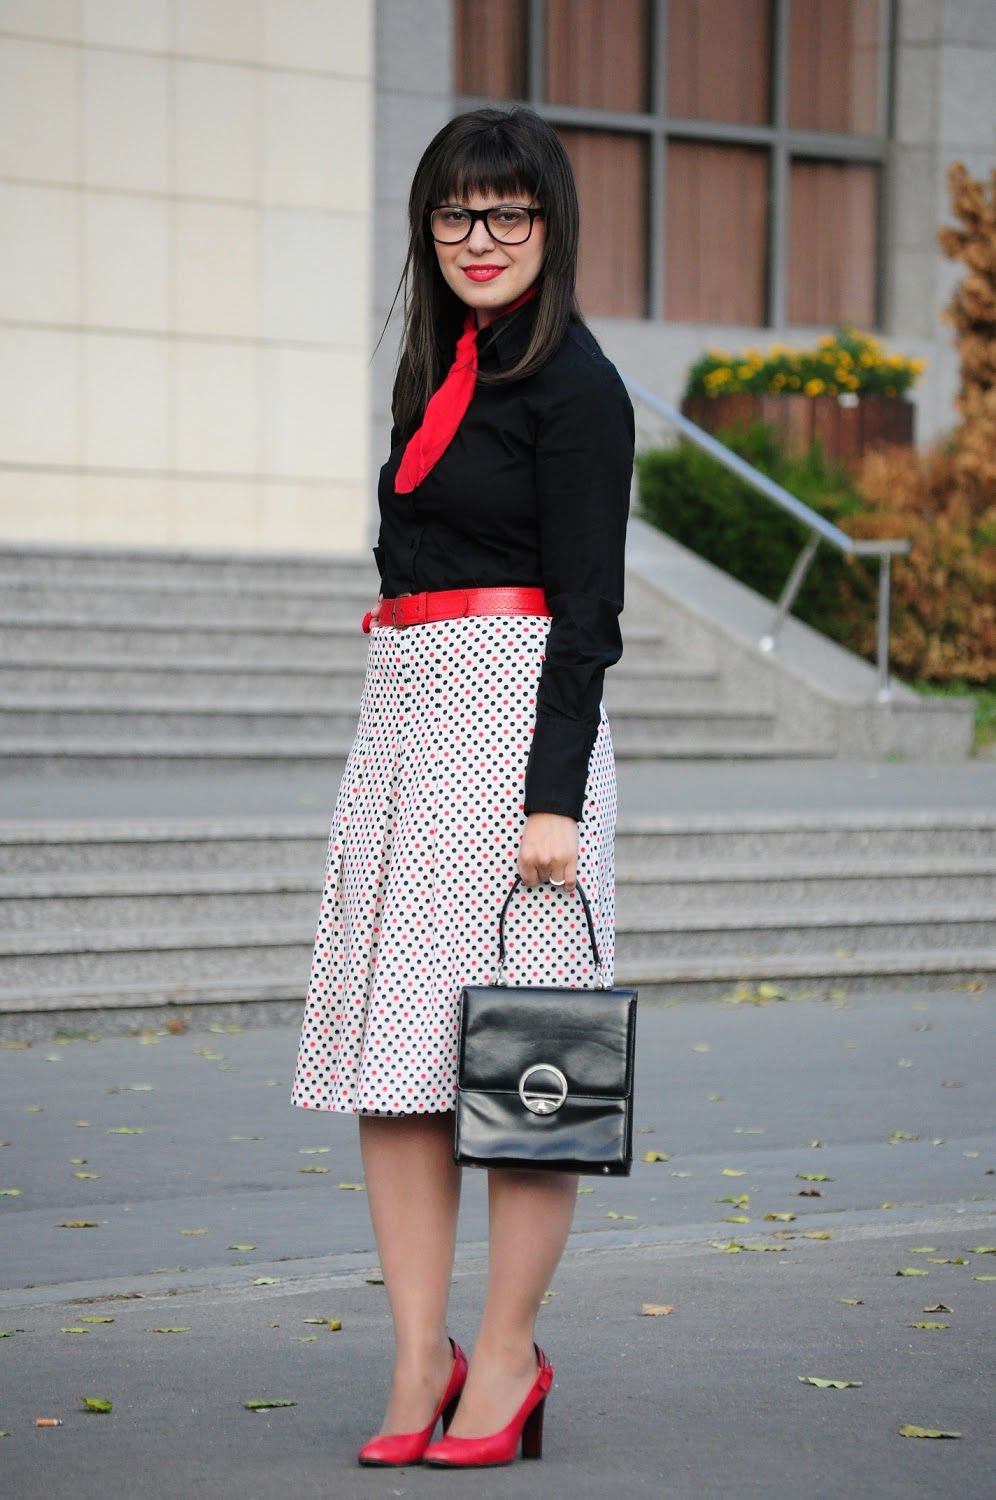 81bc9153f8 Dotty librarian outfit